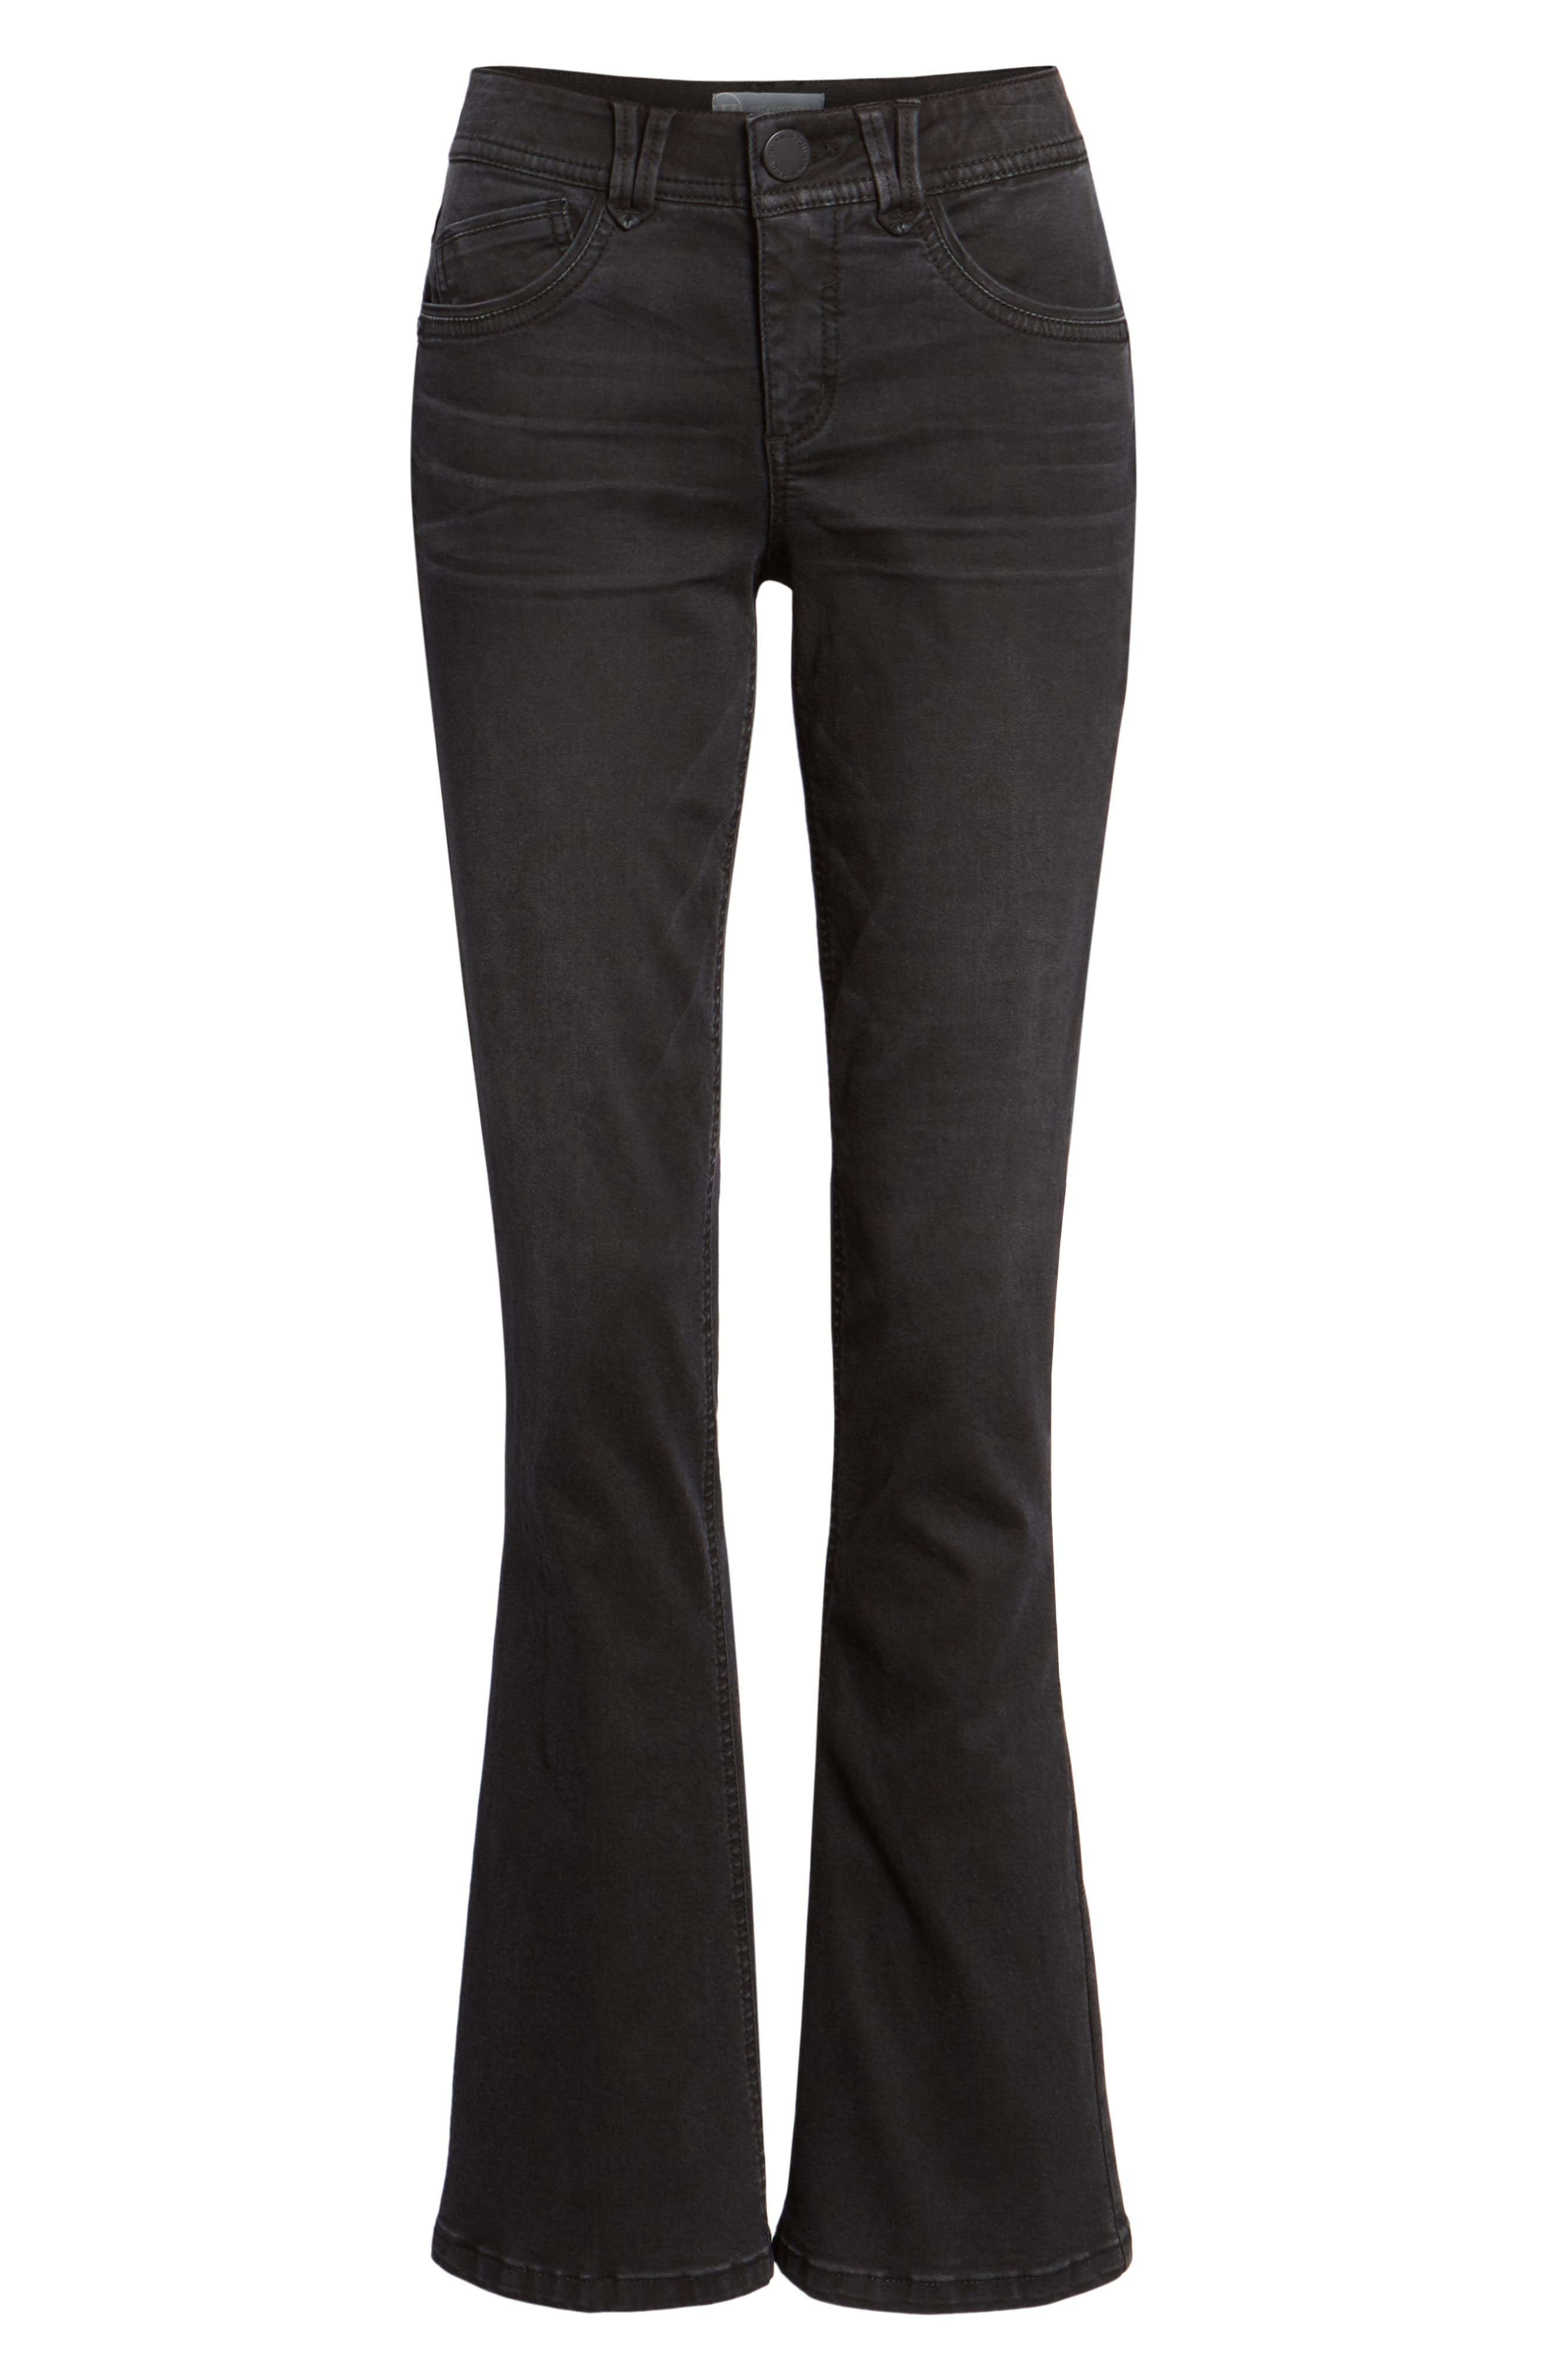 Ab-solution Itty Bitty Bootcut Jeans,                             Alternate thumbnail 7, color,                             001